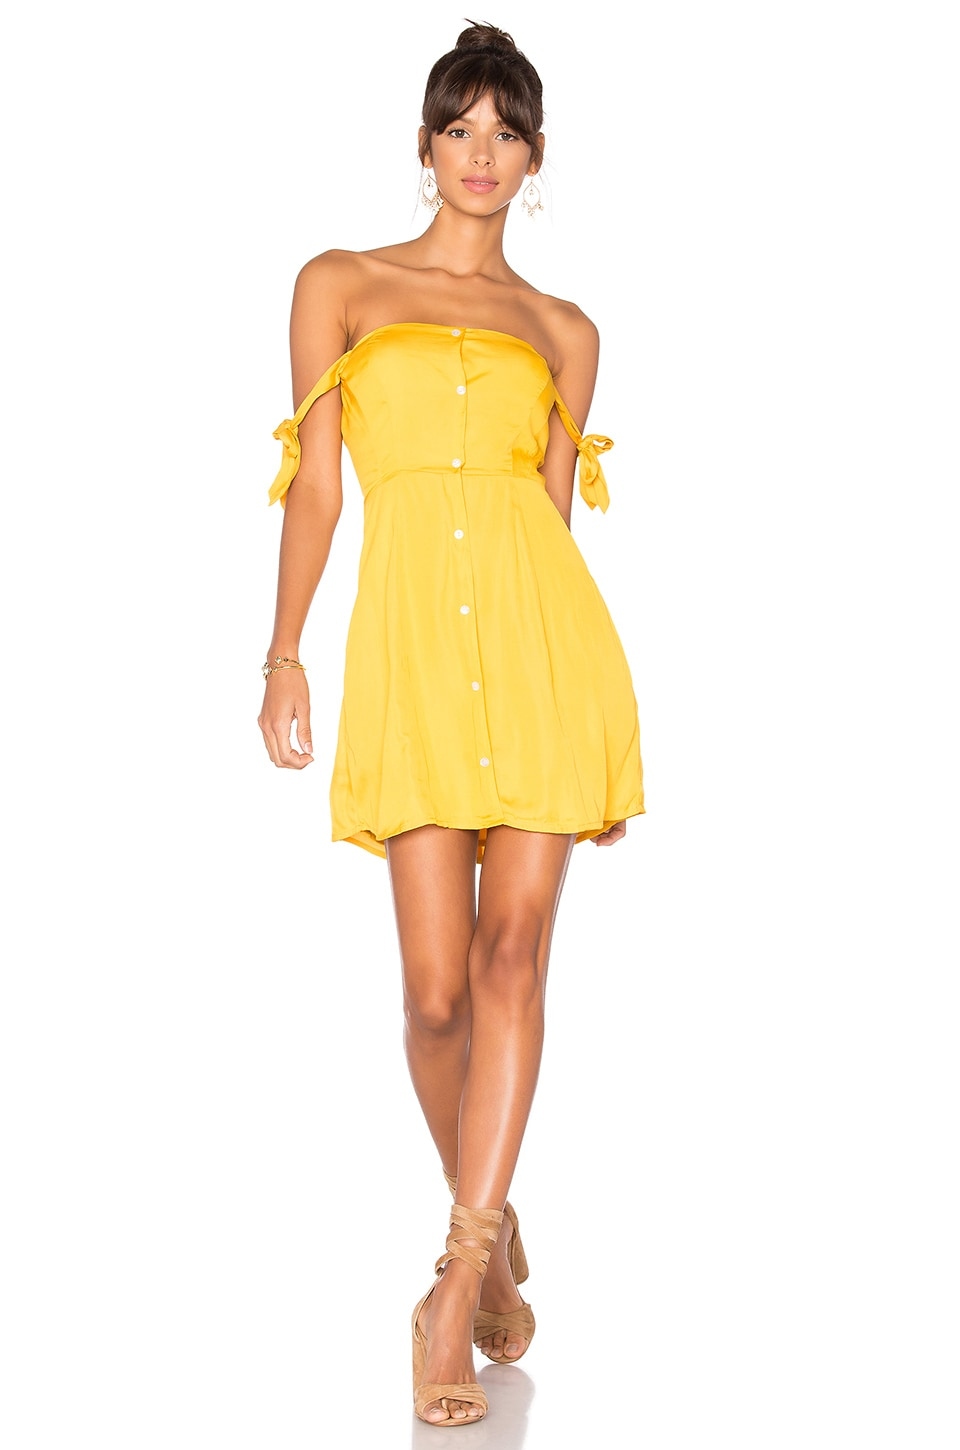 Capulet Giulia Mini Dress in Goldenrod